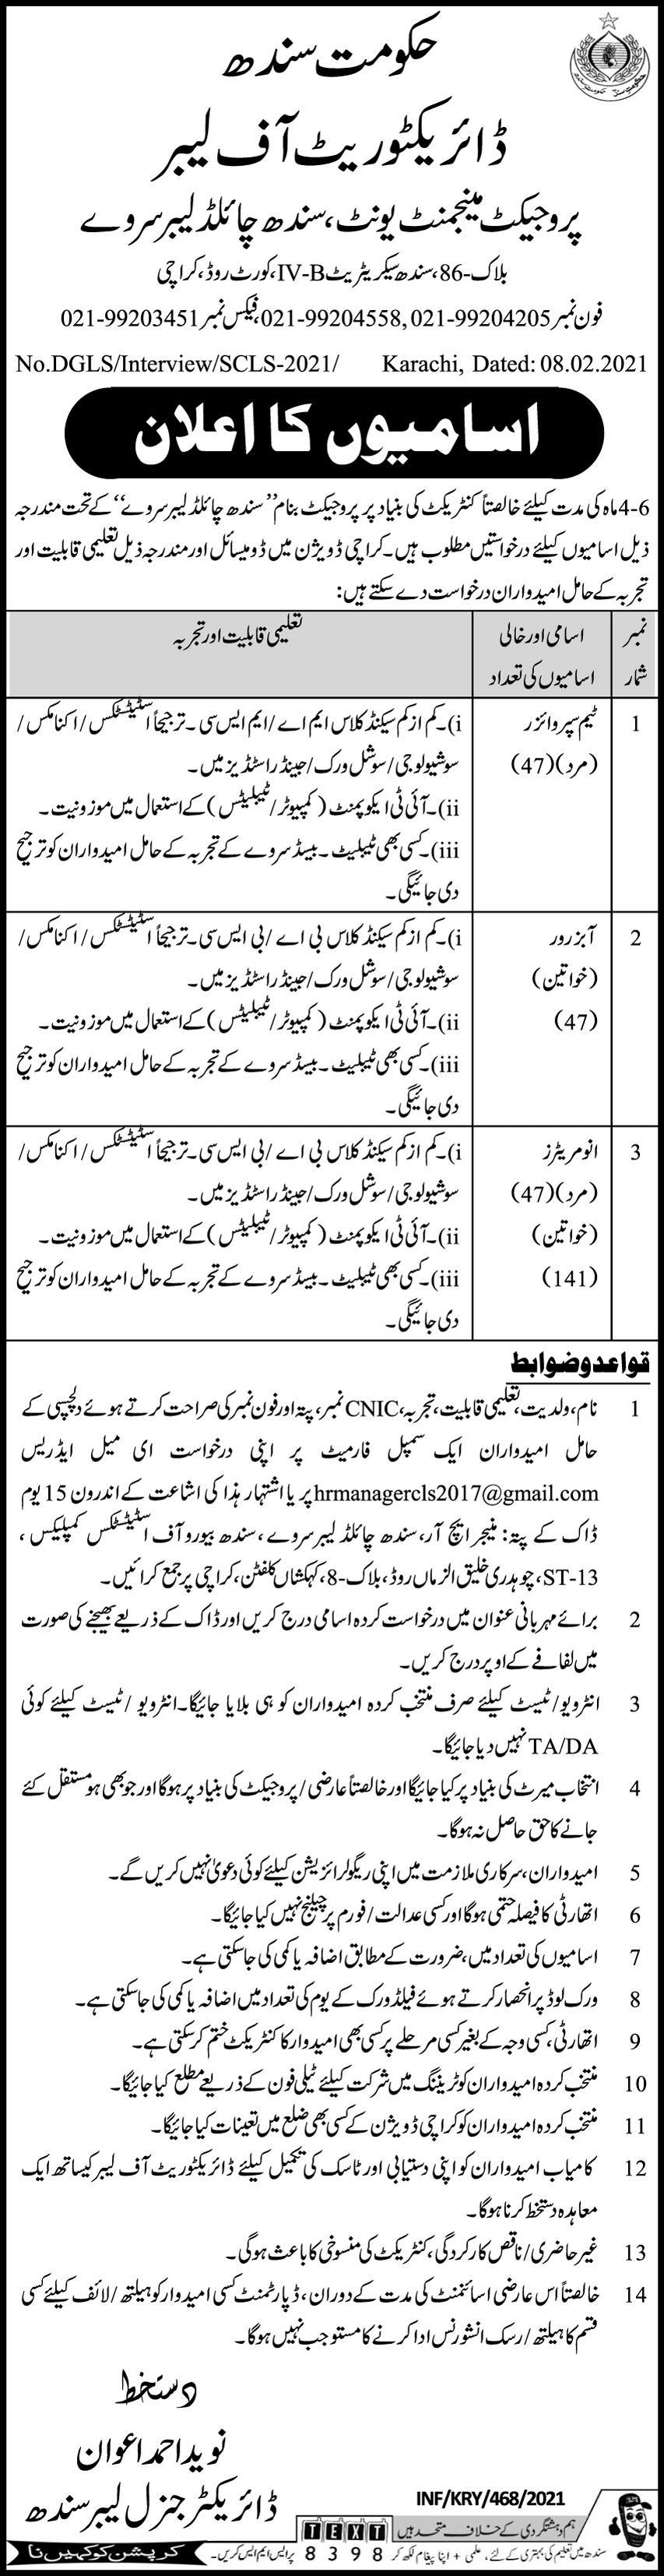 Online Apply For Sindh Govt Labour Department Jobs 2021 :- hrmanagercls2017@gmail.com